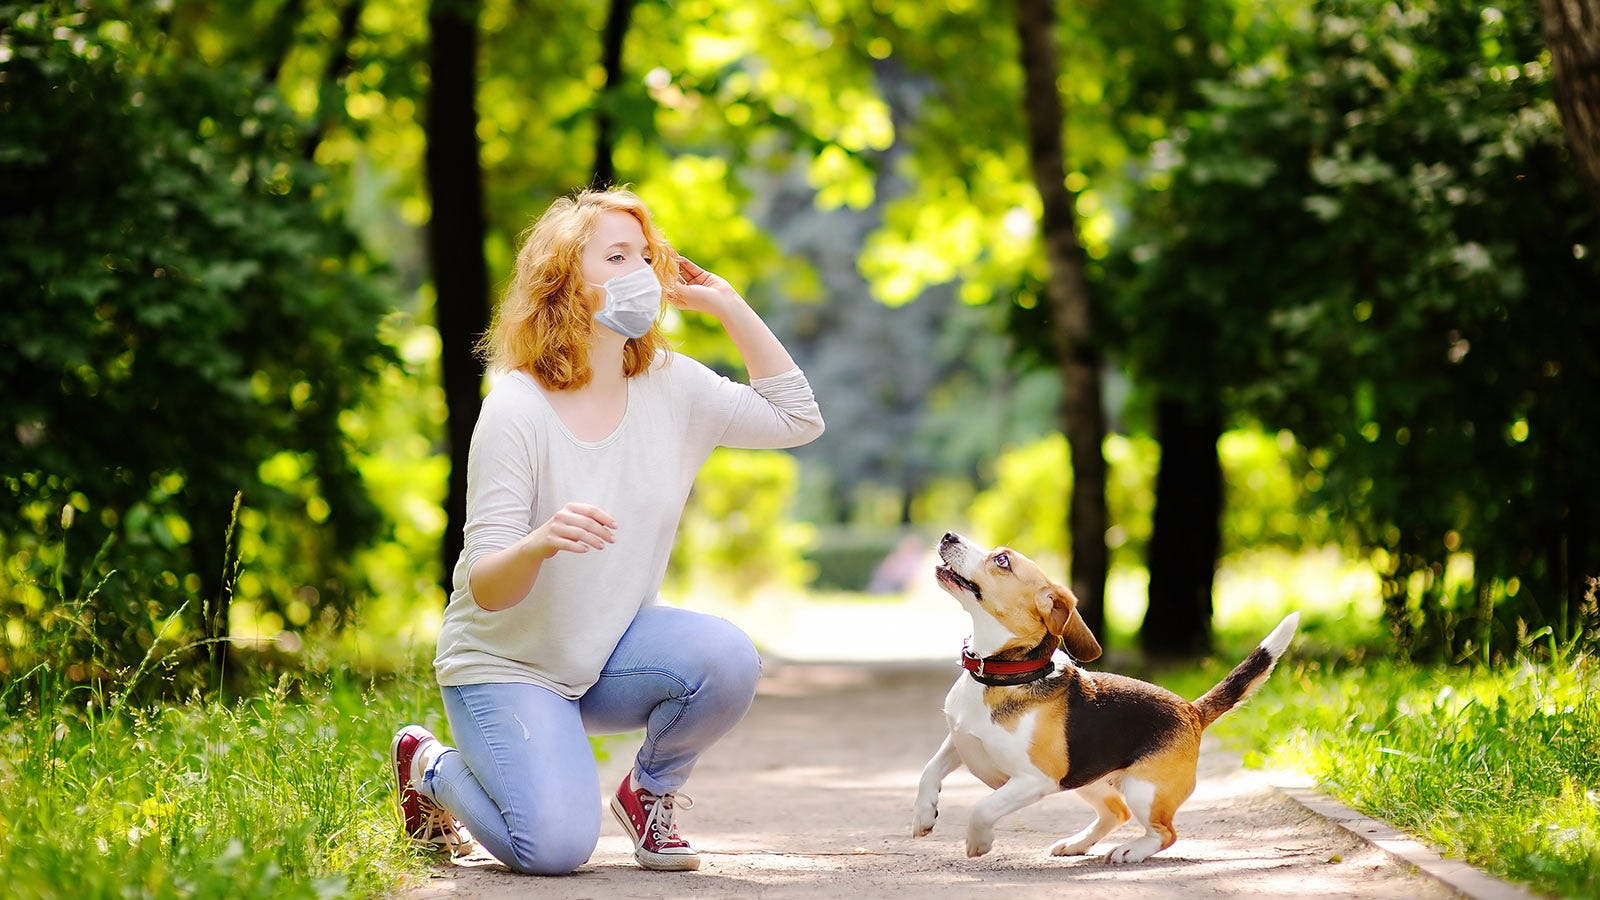 A woman wearing a mask, preparing to throw a toy for her dog to fetch on a nature trail.